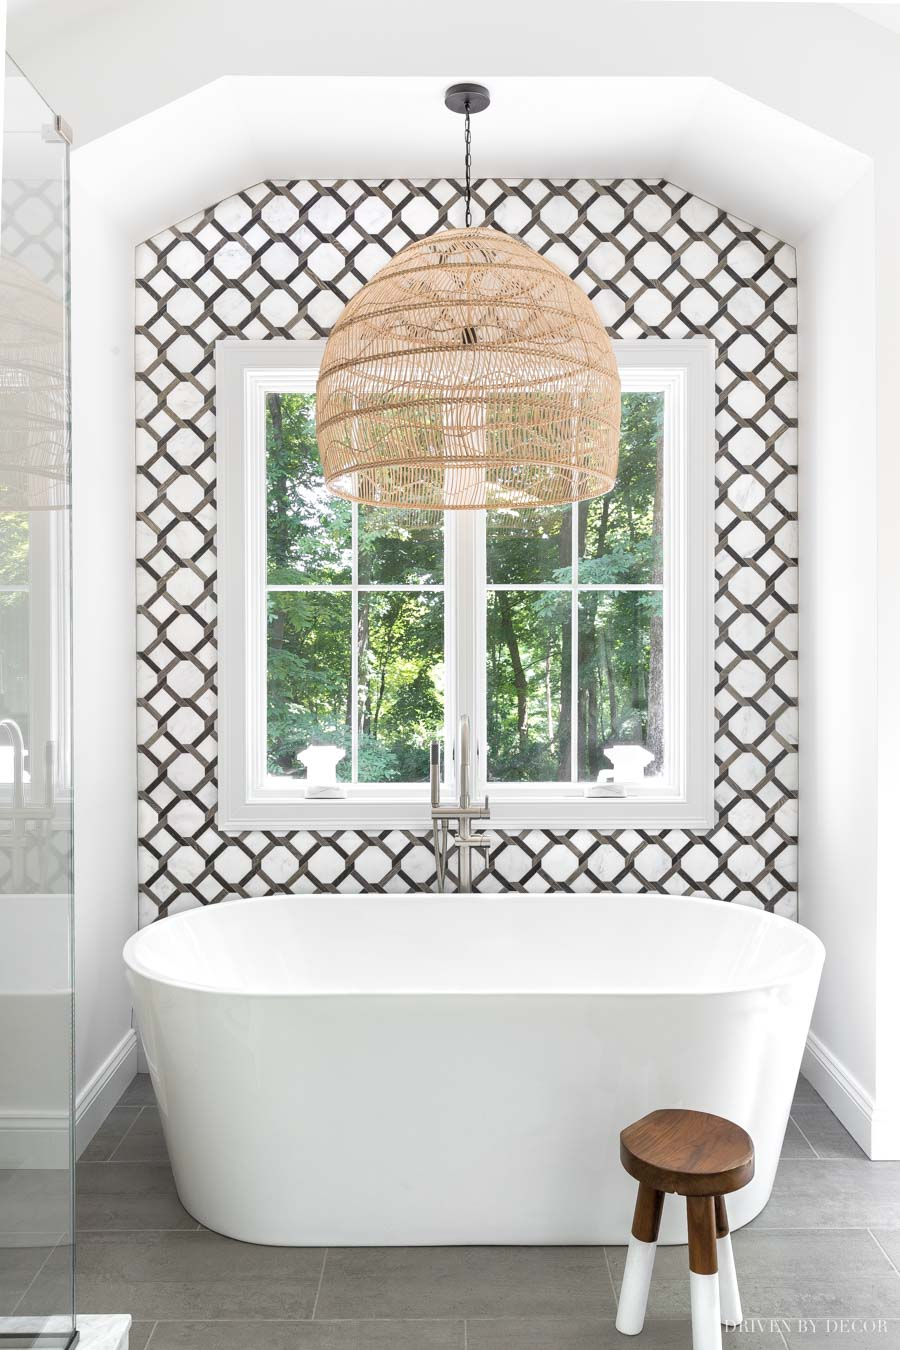 The freestanding tub in our master bathroom with a stunning statement-making tile wall!